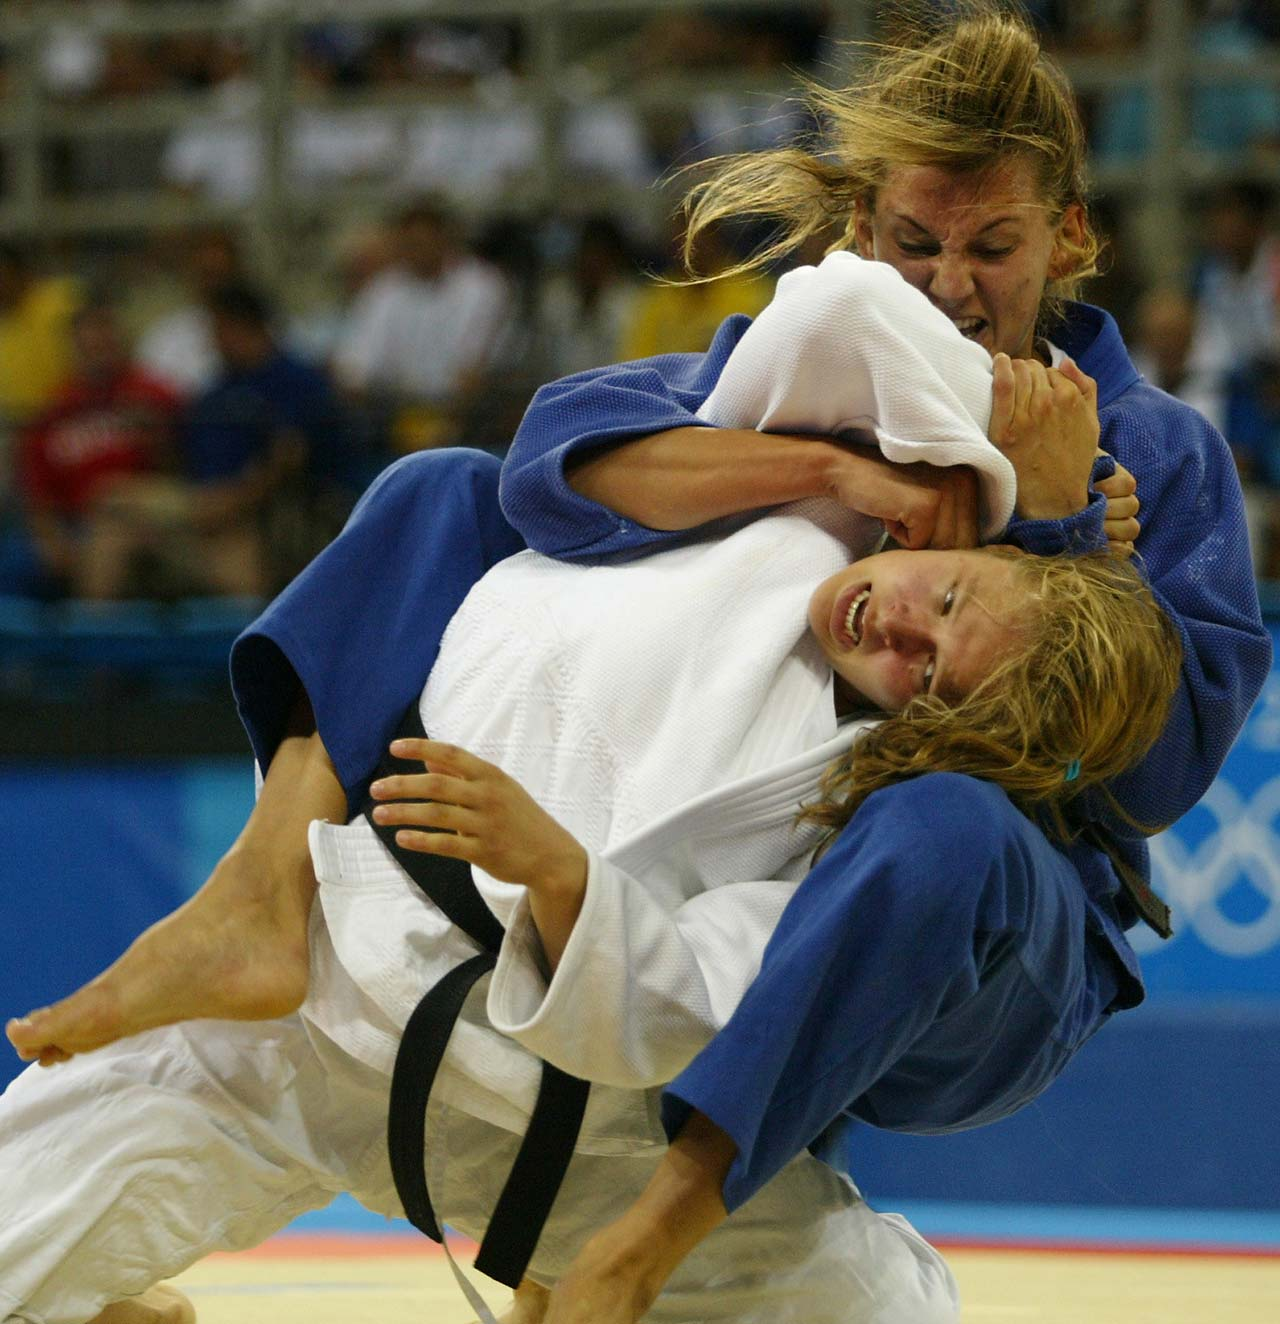 Claudia Heill from Austria fights Ronda Rousey during the Judo half-middle weight (-63kg)  event at the 2004 Olympic Games in Athens.